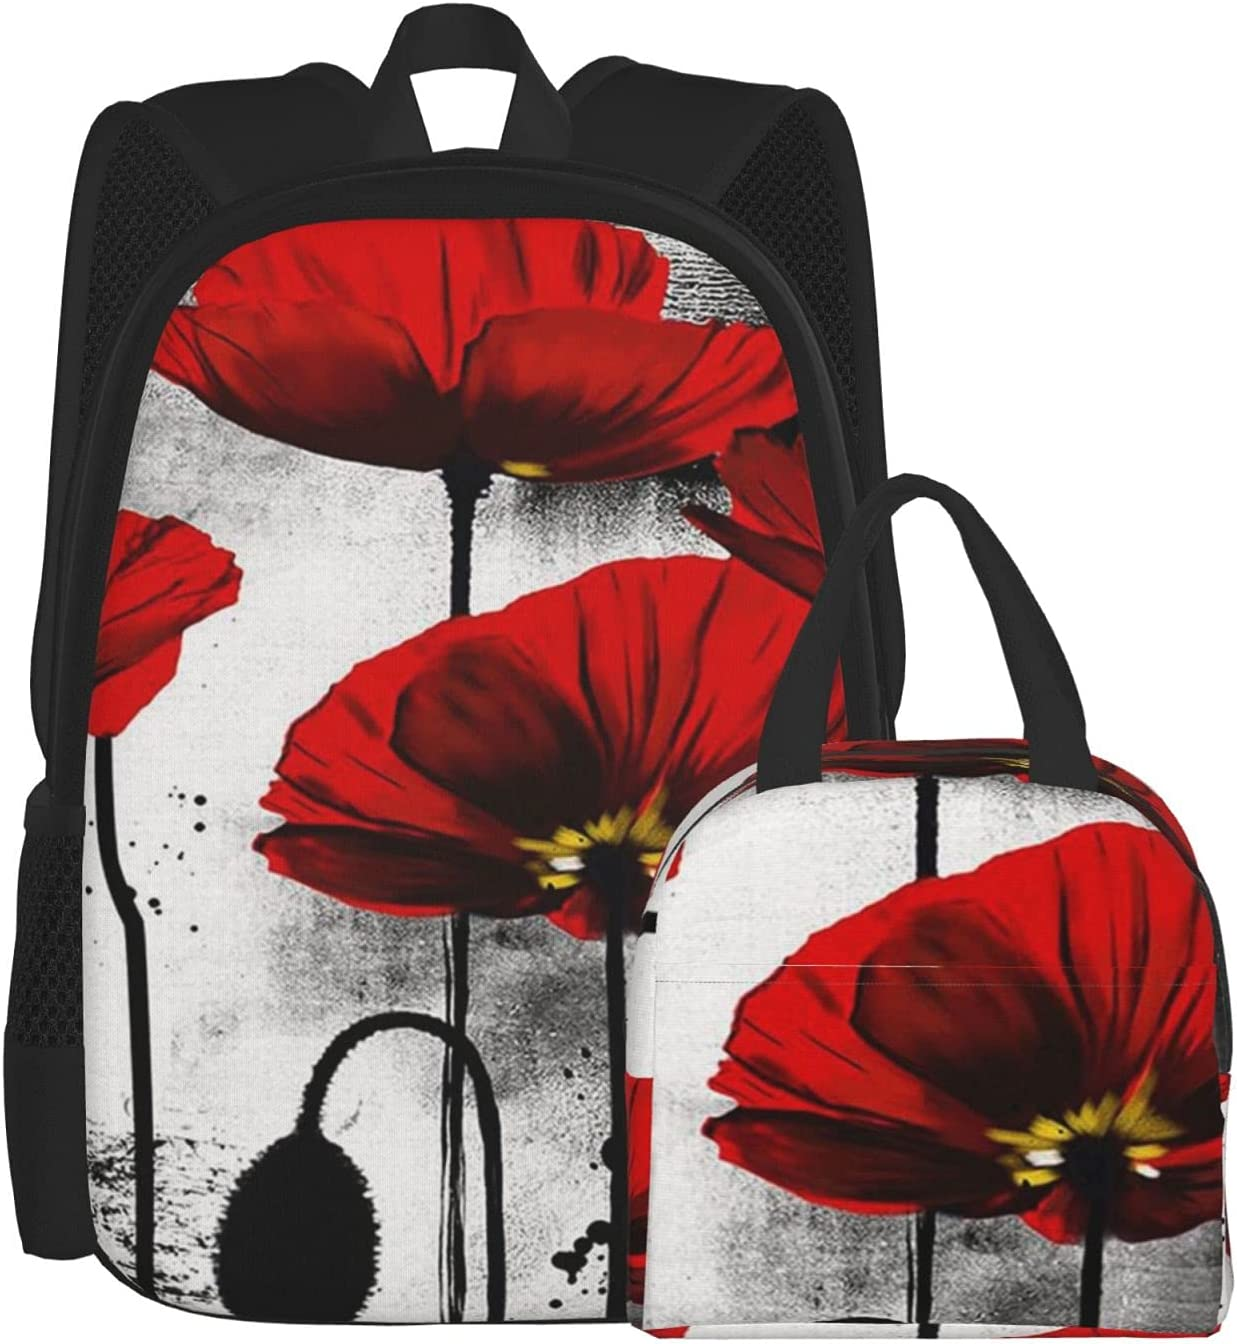 Backpack And Lunch Bag Set Ranking TOP10 2 Ink Limited Special Price Piece P Poppy Flower Beautiful